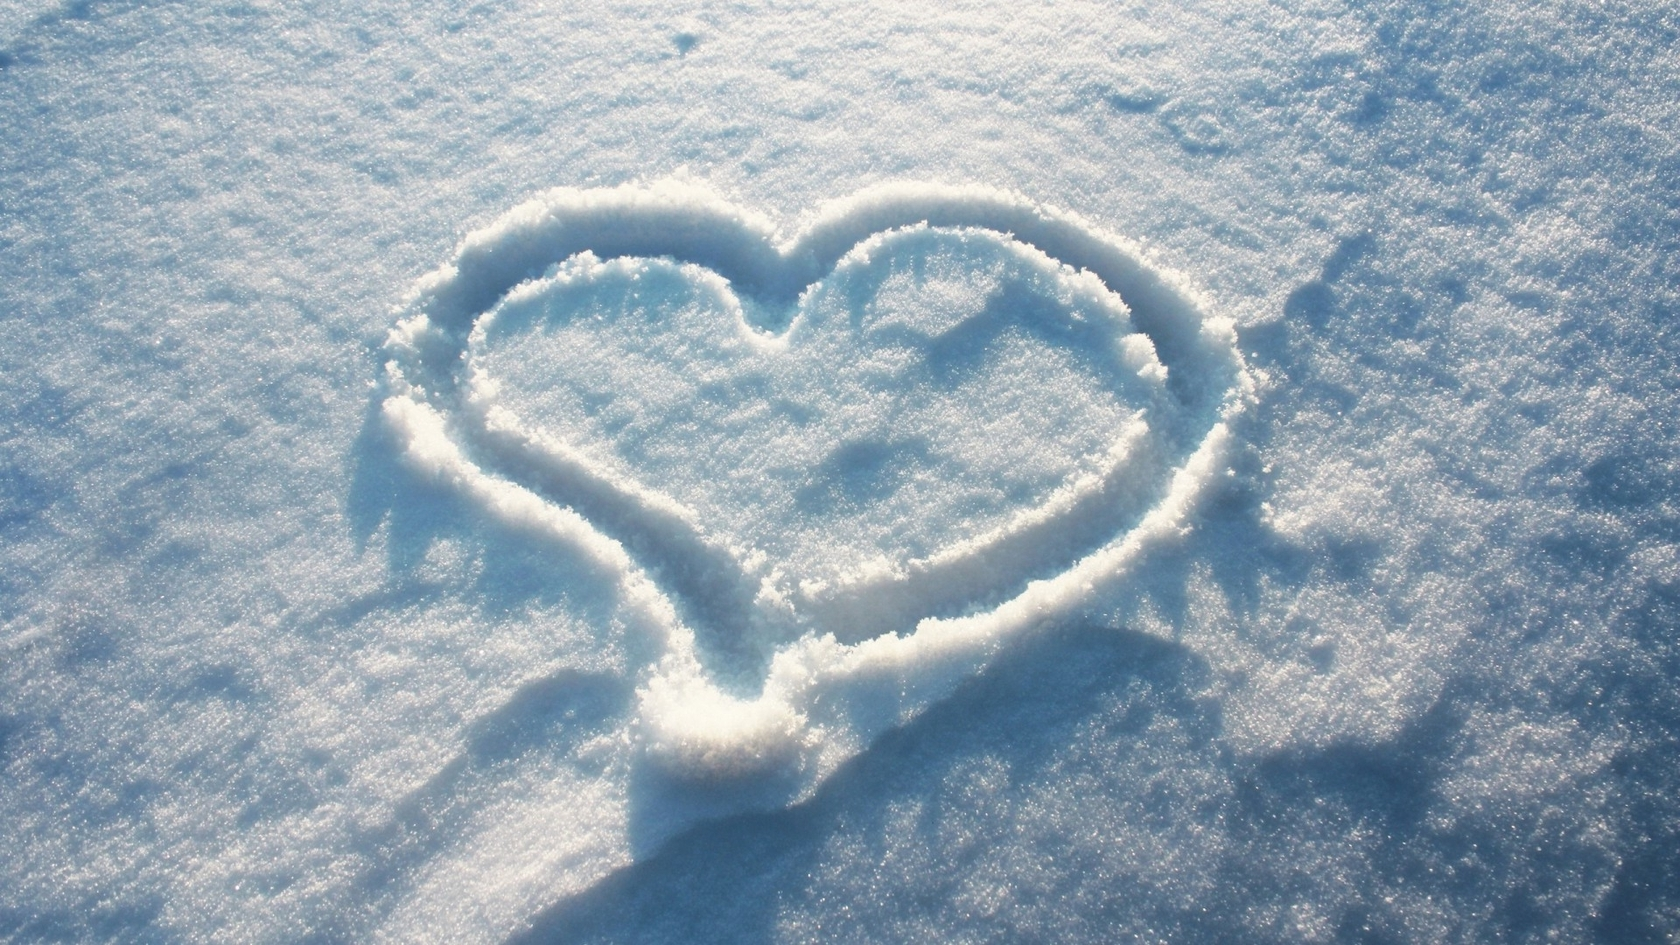 Cartoon Love Couple Hd Wallpapers Heart In The Snow Hd Wallpaper Hd Latest Wallpapers